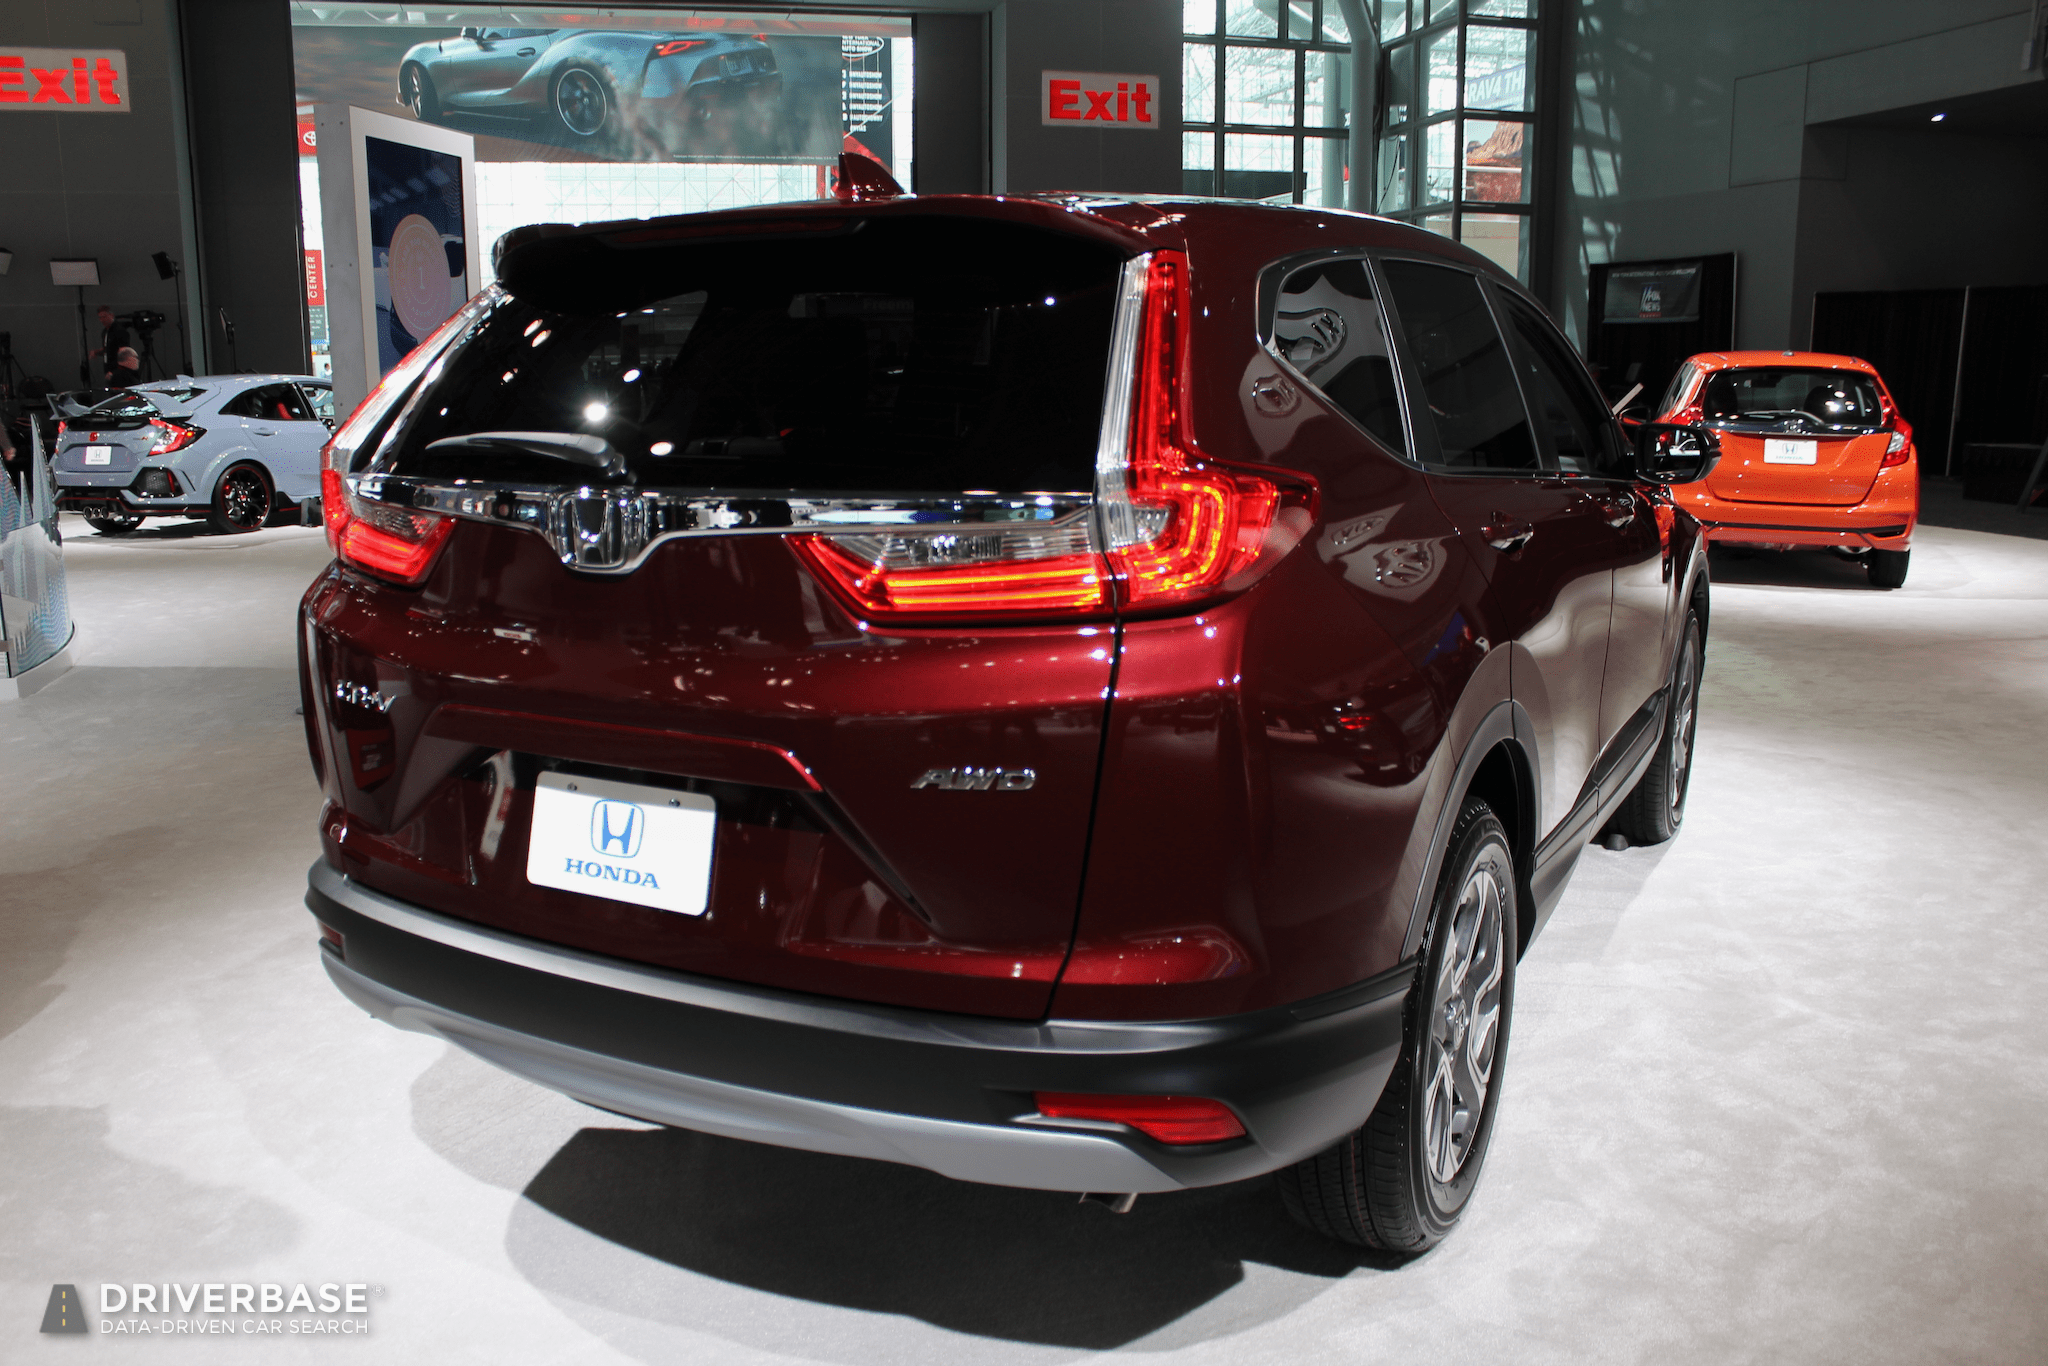 2020 Honda Crv Suv At The 2019 New York Auto Show Driverbase